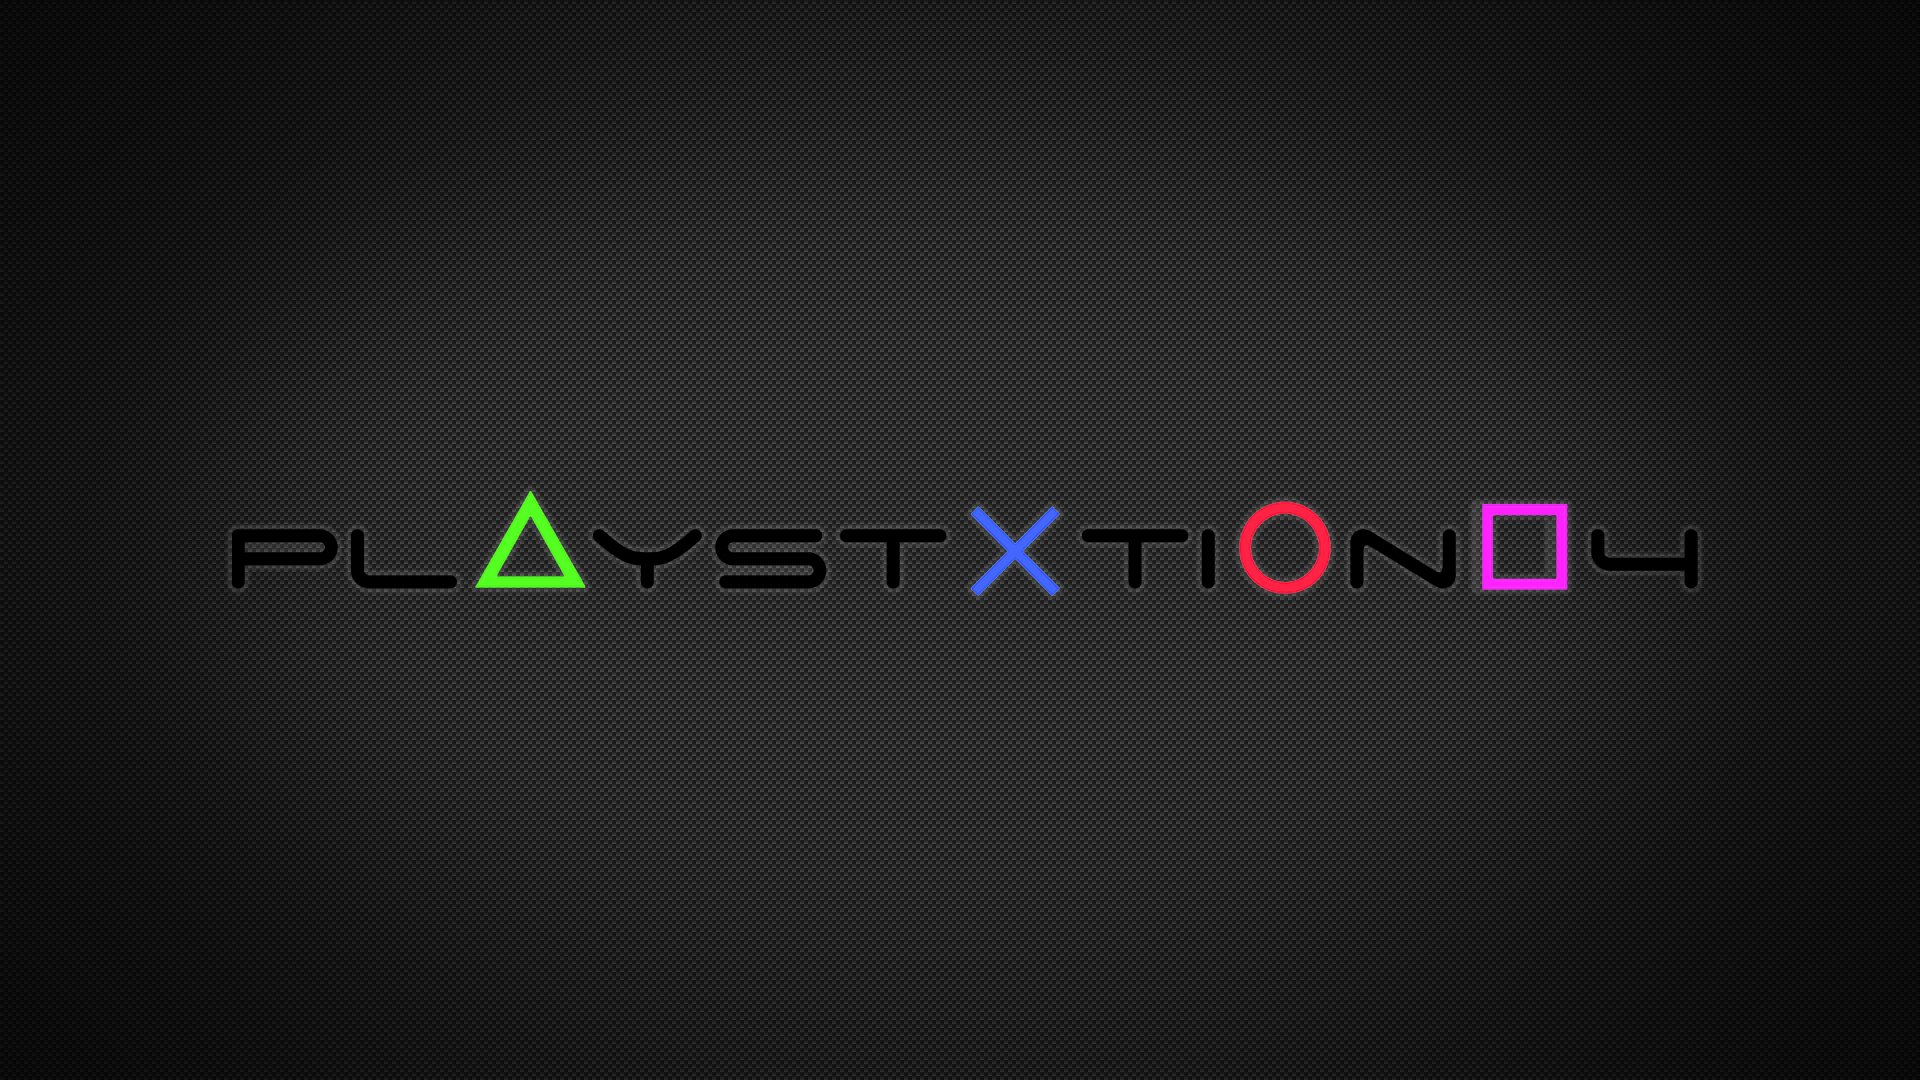 Free Download Sony Playstation 4 Wallpapers 1920x1080 For Your